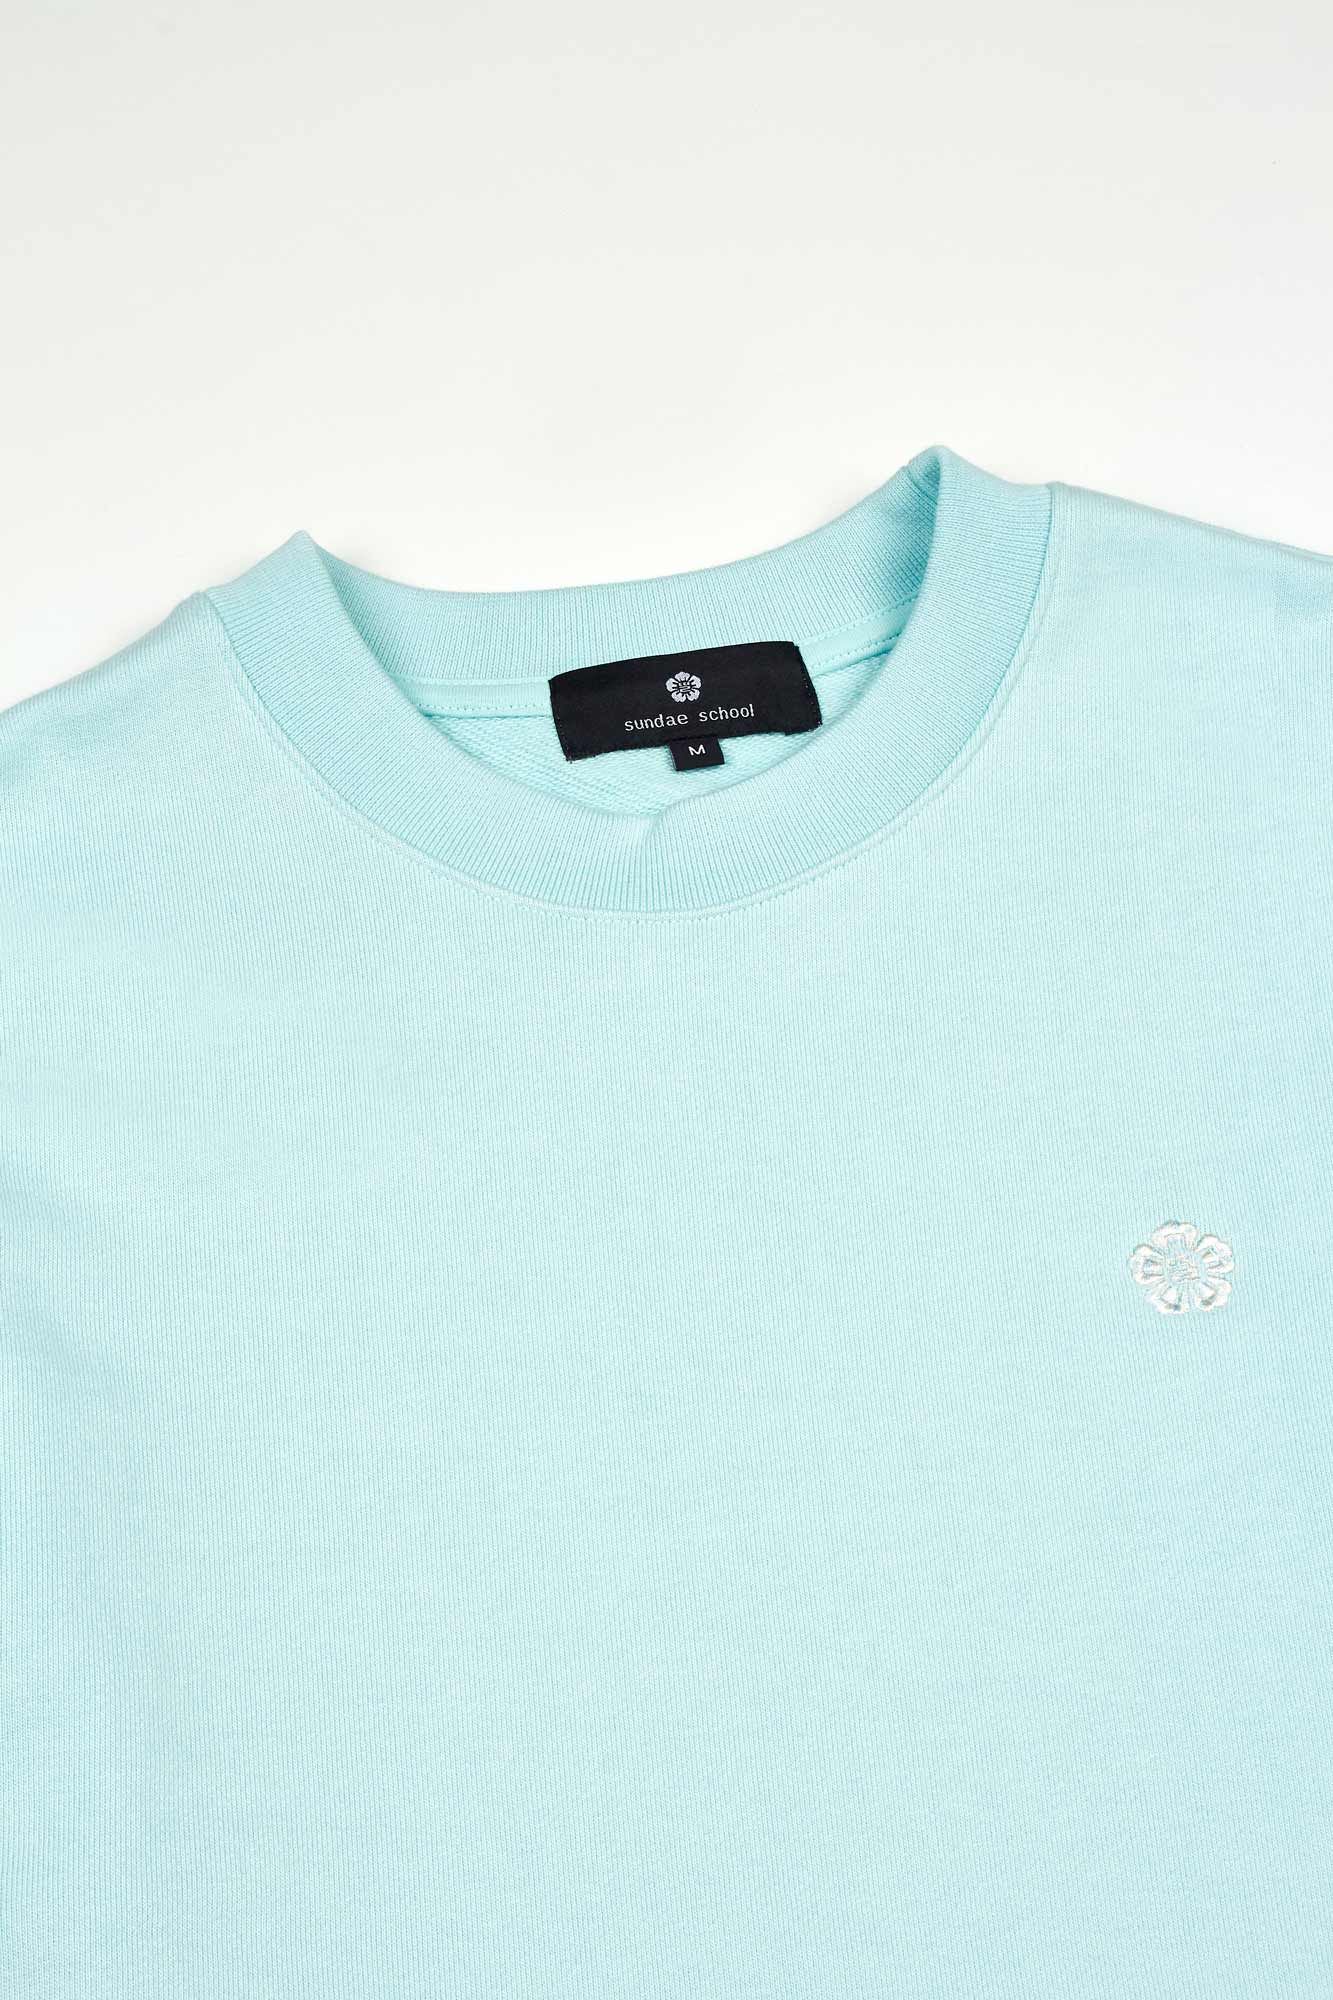 Photo of Beach Blue Uniform Crewneck, number 3